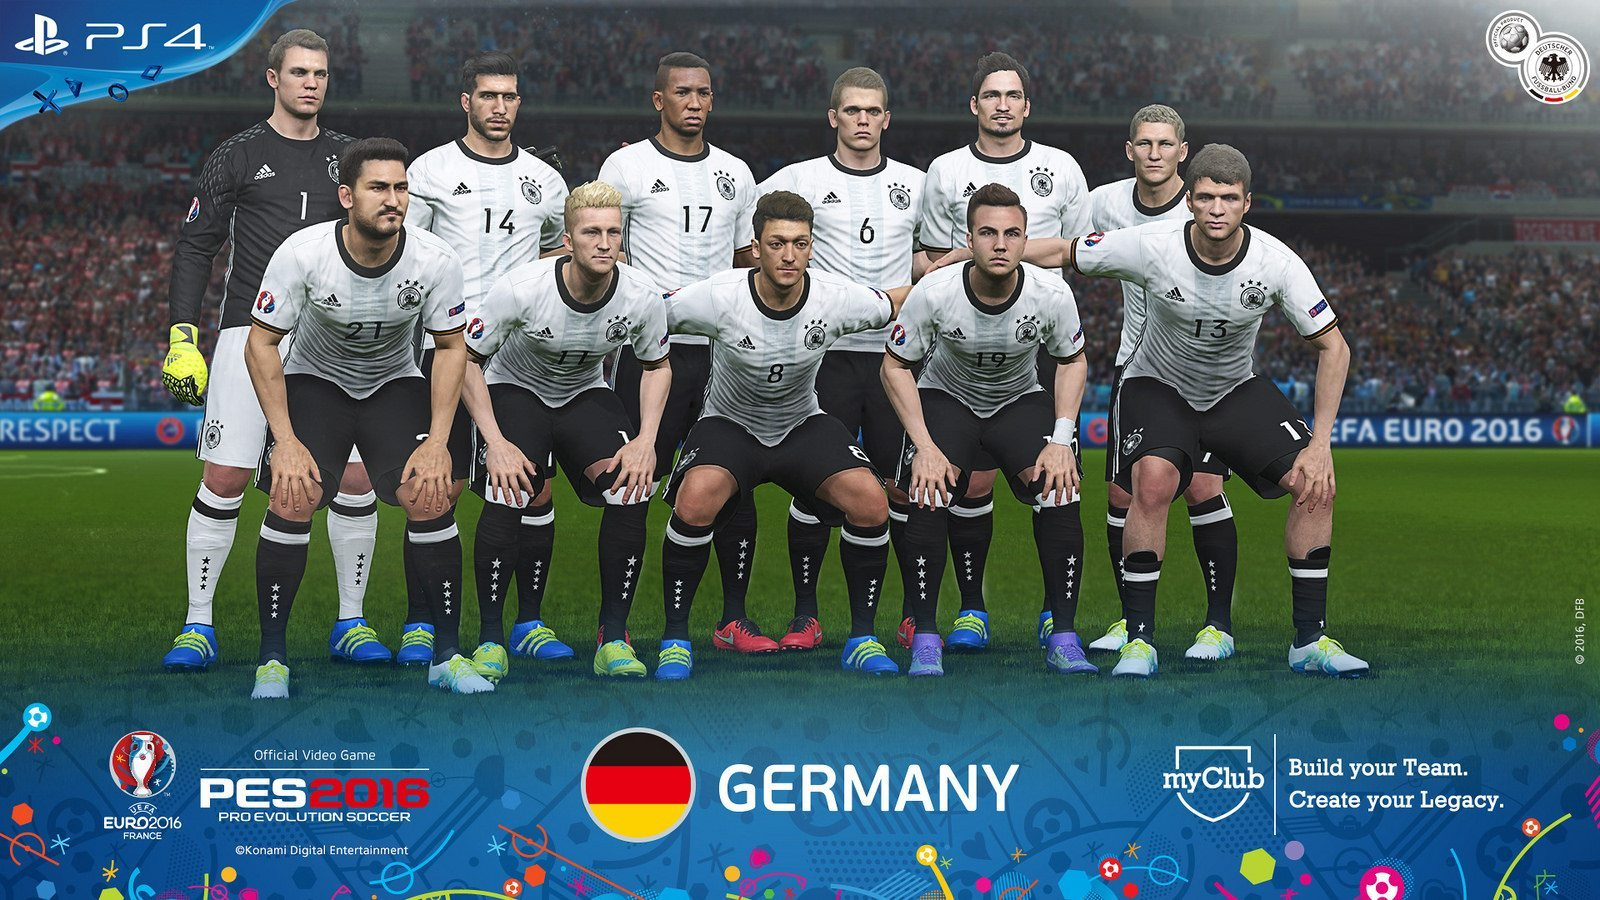 PES 2016 – UEFA Euro 2016 Germany